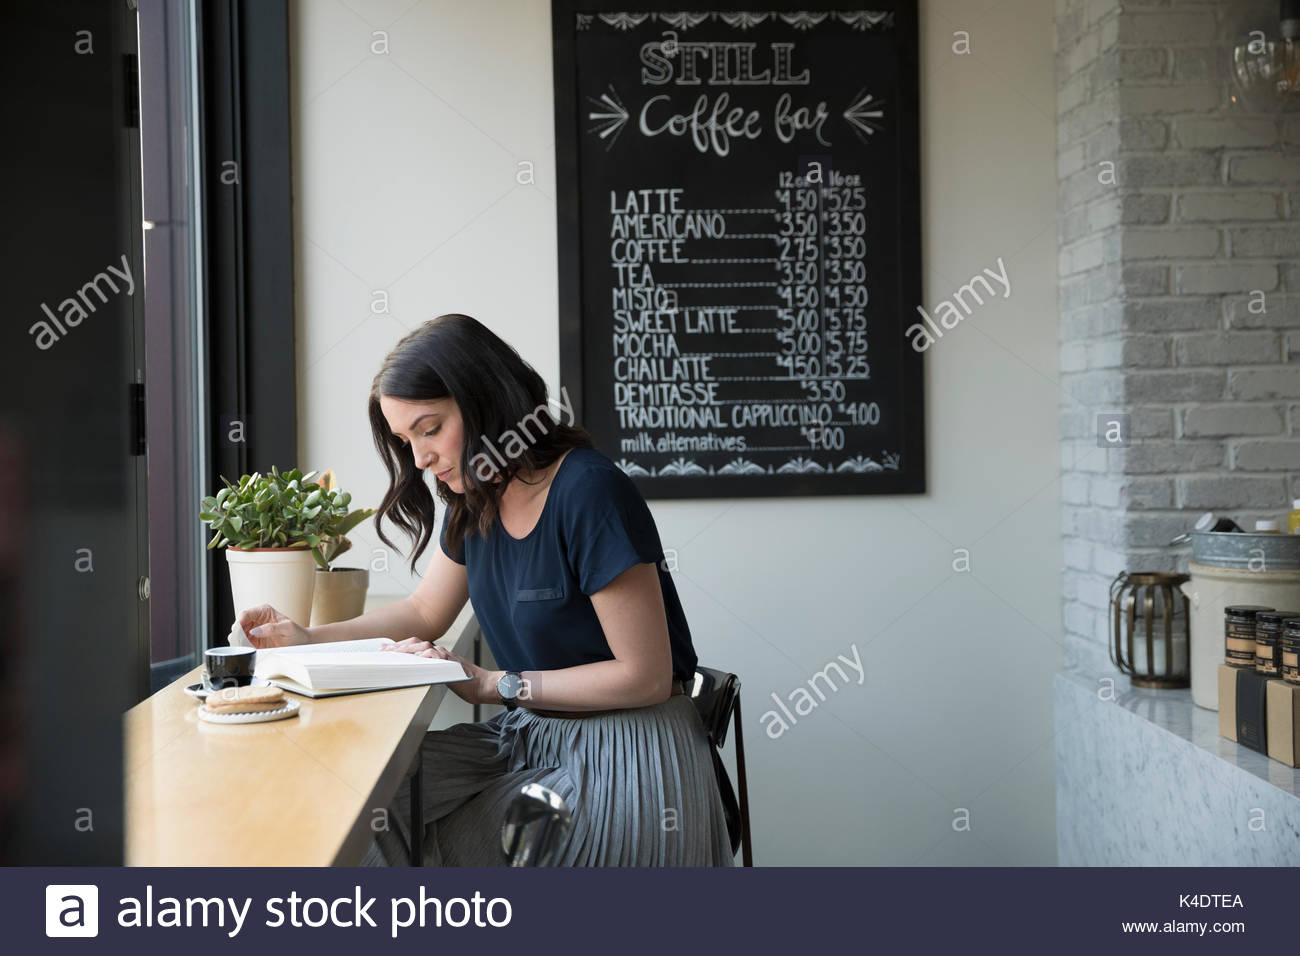 Woman reading book and drinking coffee at counter in cafe - Stock Image